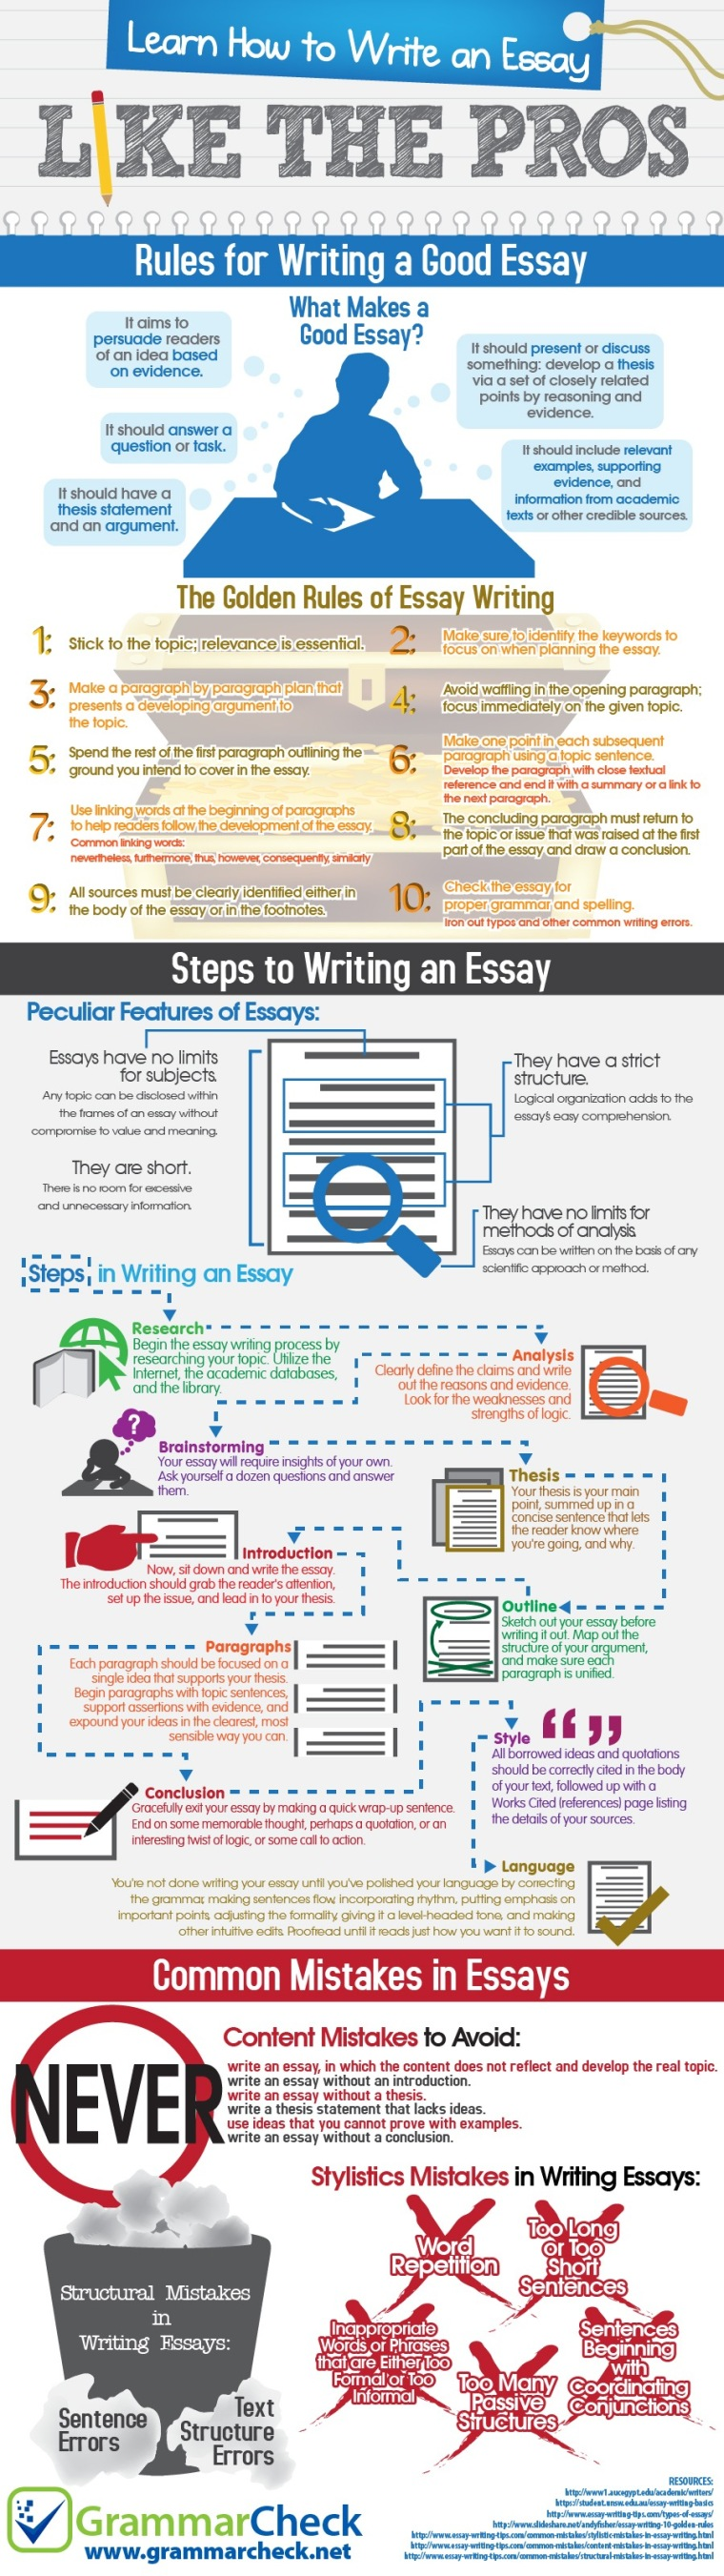 essay writing rules standard essay writing online writing service  rules for writing a good essay reading writing coffee did you this helpful please let me